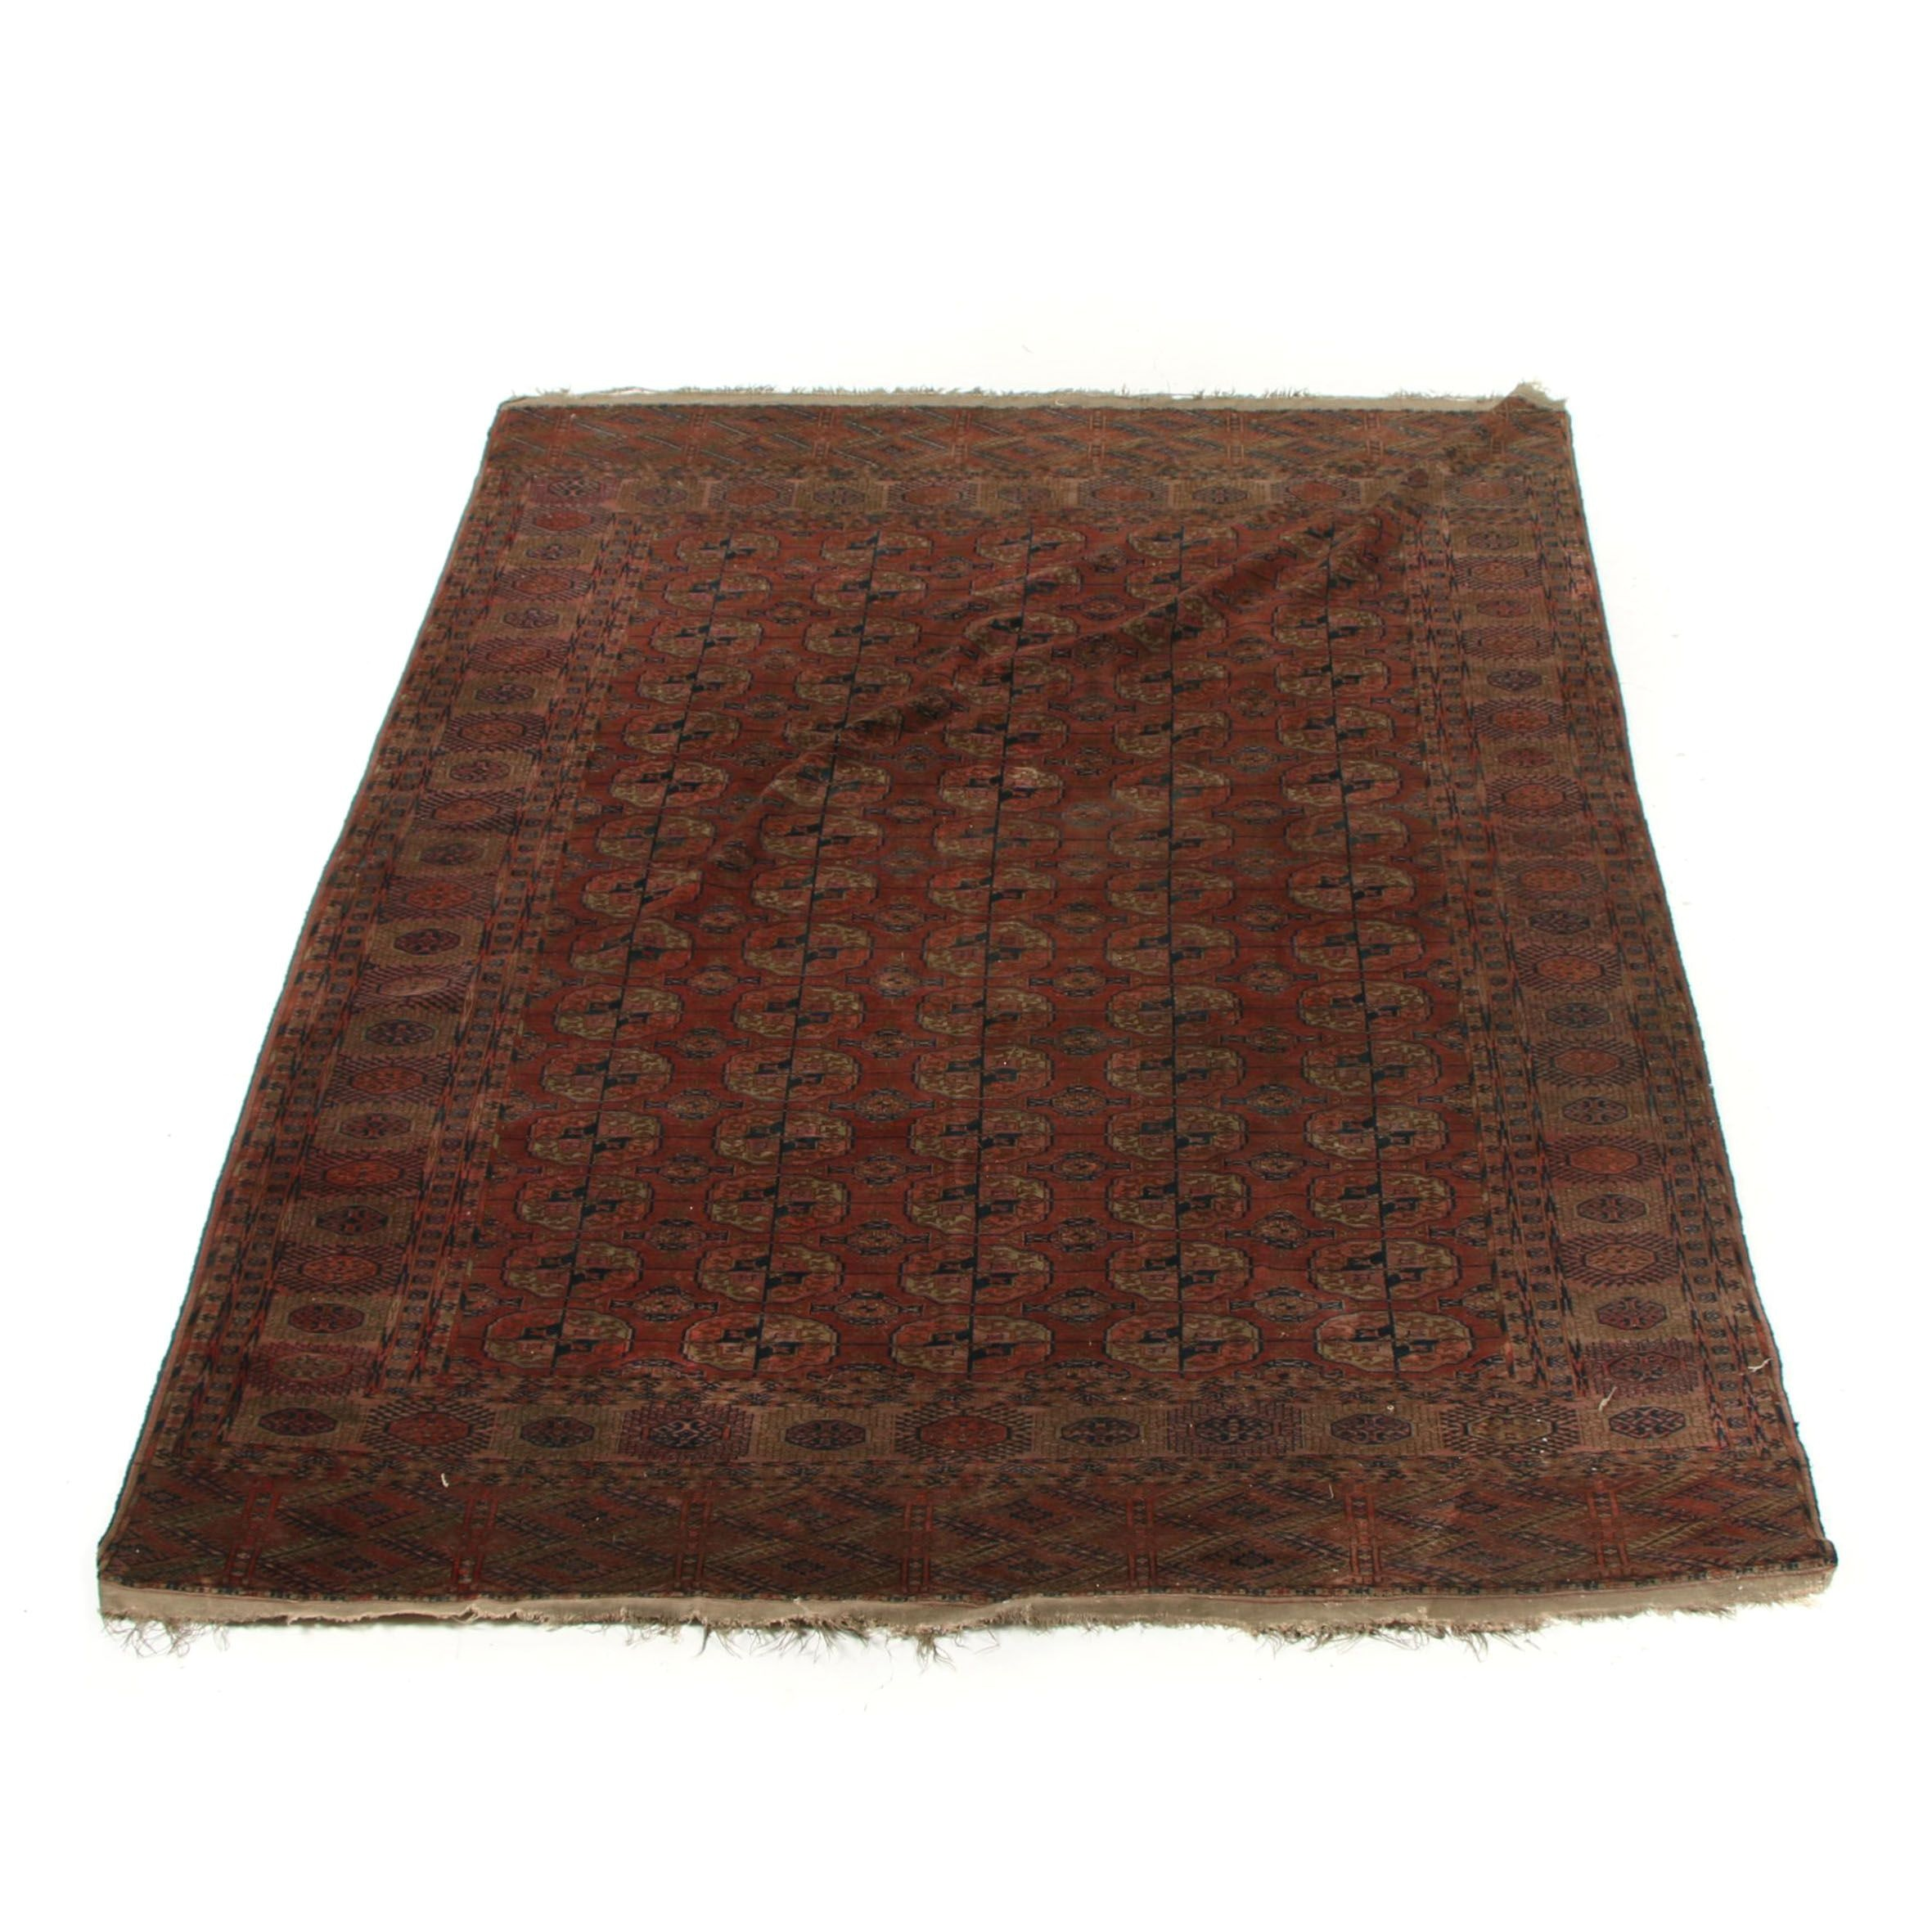 Hand-Knotted Turkmen Afghani Wool Area Rug